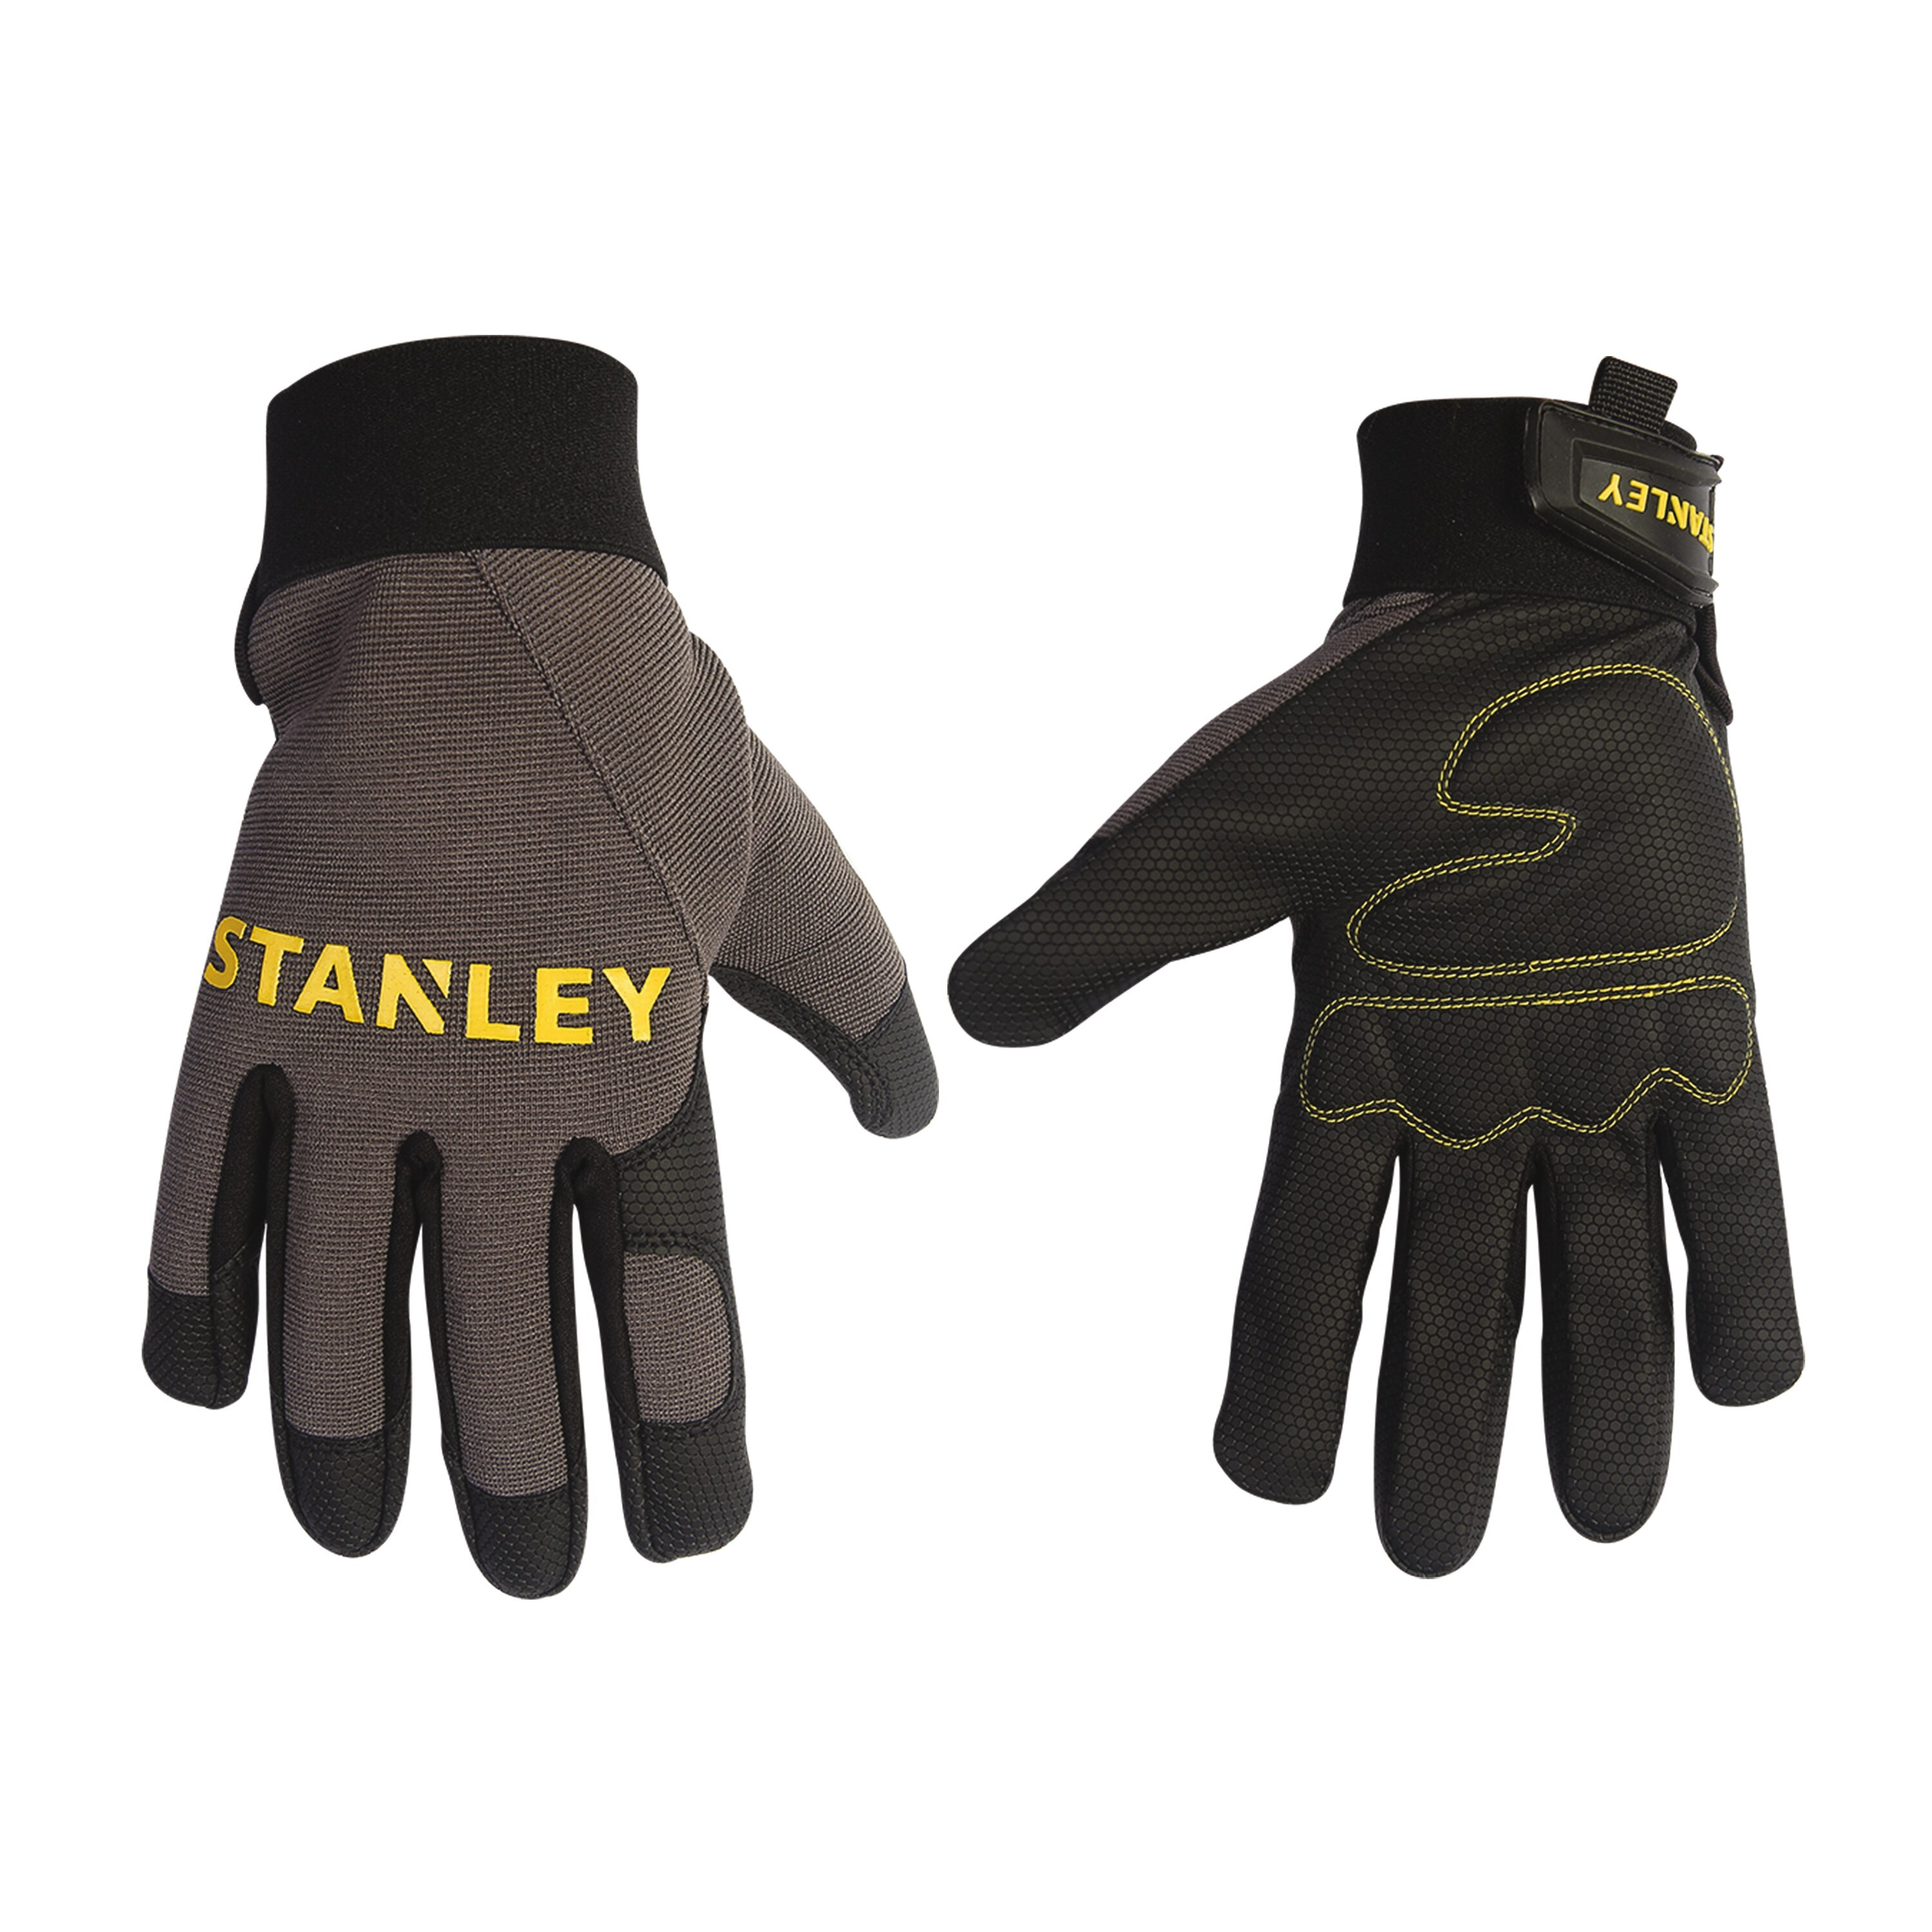 Stanley Tools - Padded Comfort Grip Digital Polyurethane Palm with Foam Padding - S77641